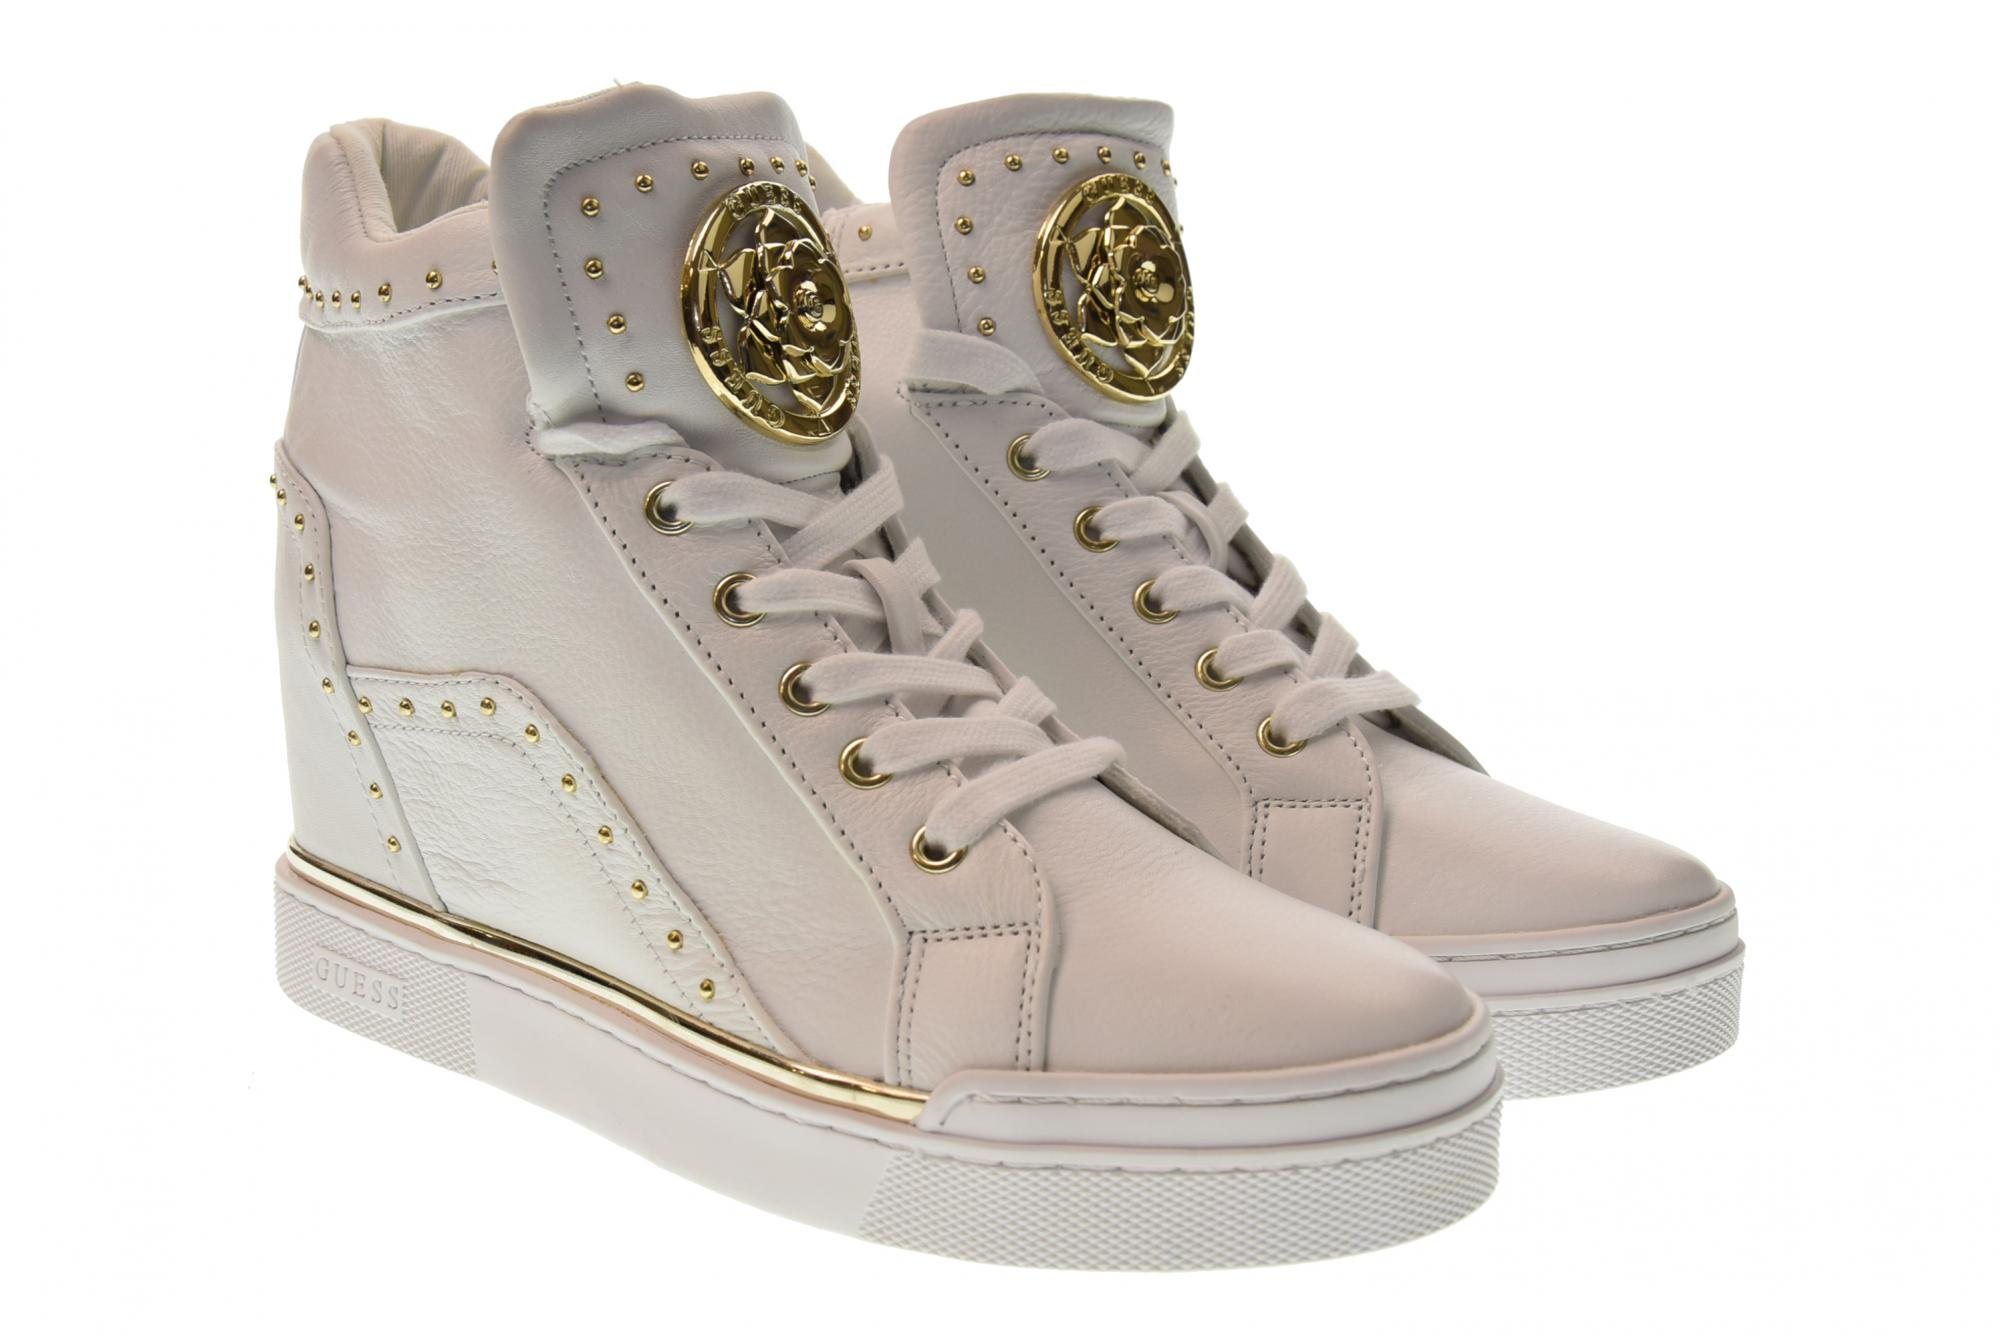 Guess P19us shoes woman high sneakers with internal wedge FL5FR2LEA12